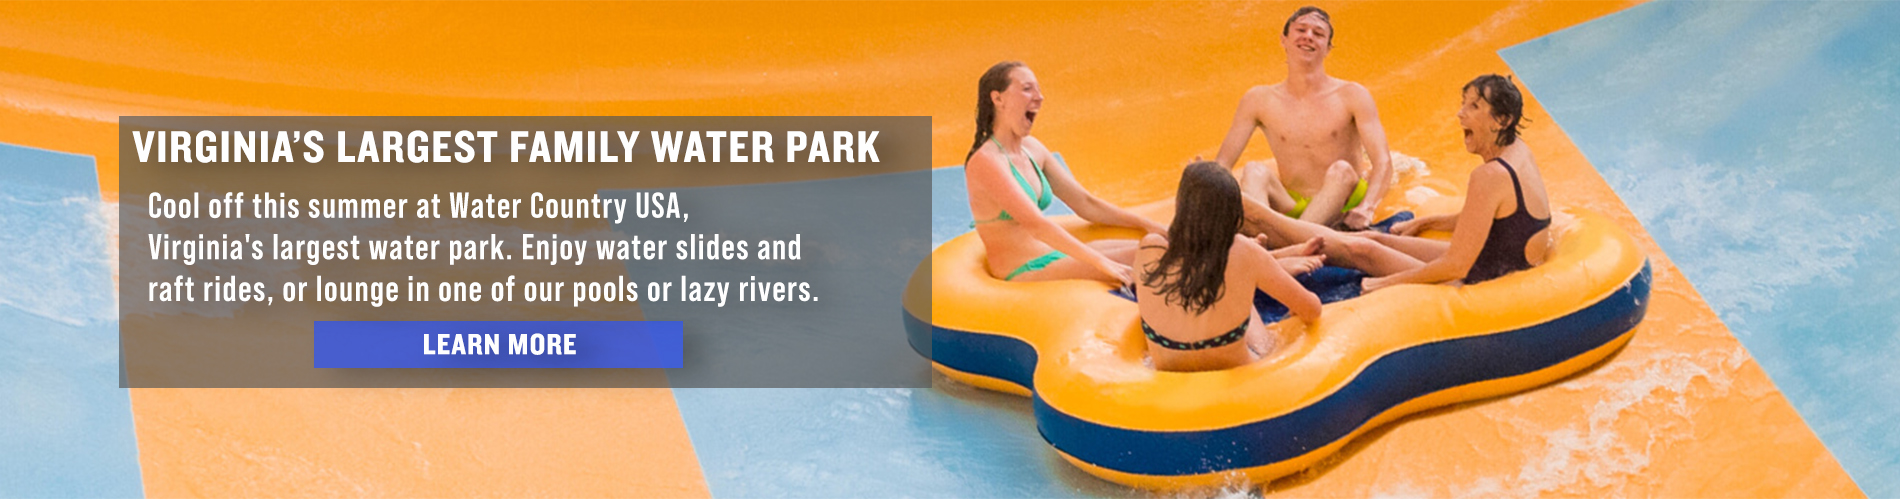 Virginia's Largest Family Water Park